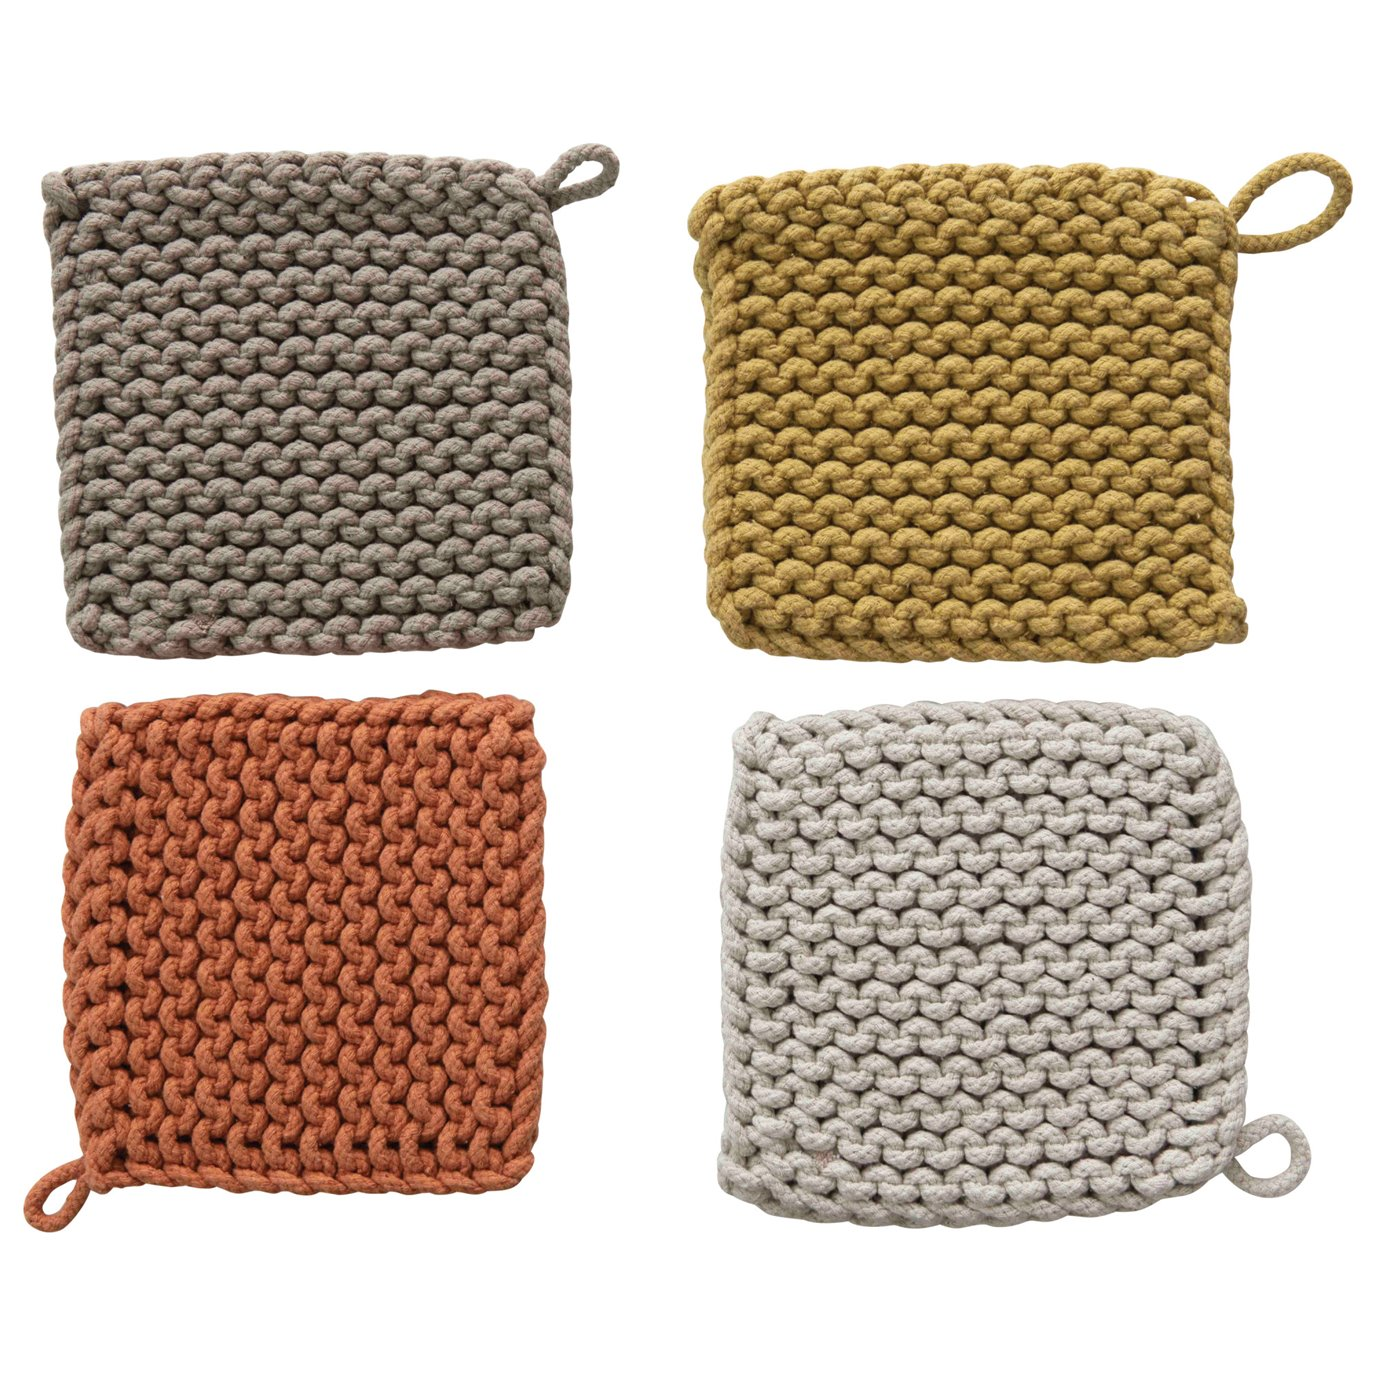 Square Crocheted Potholders/Hot Pads (Set of 4 Colors)